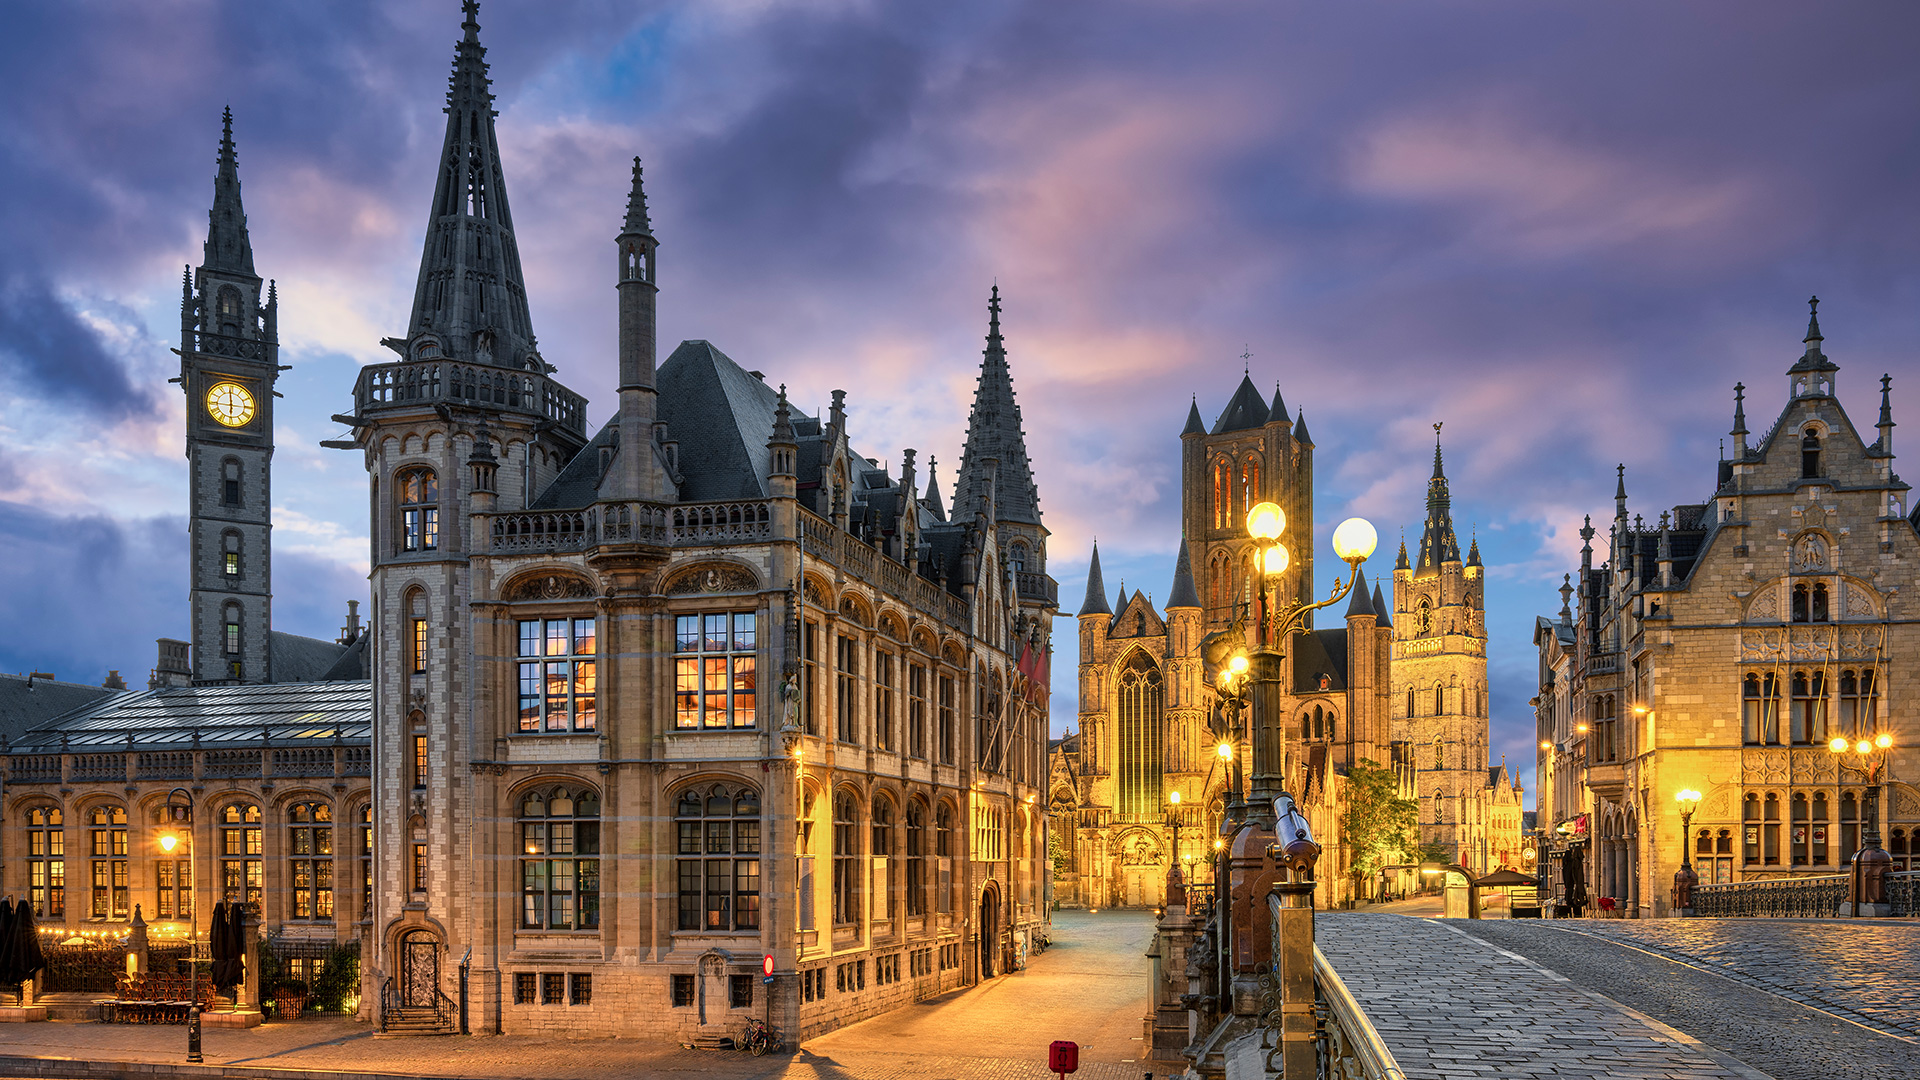 View of historic area of Graslei and bell tower at River Leie and bridge Sint-Michielsplein at dusk, Ghent, Belgium